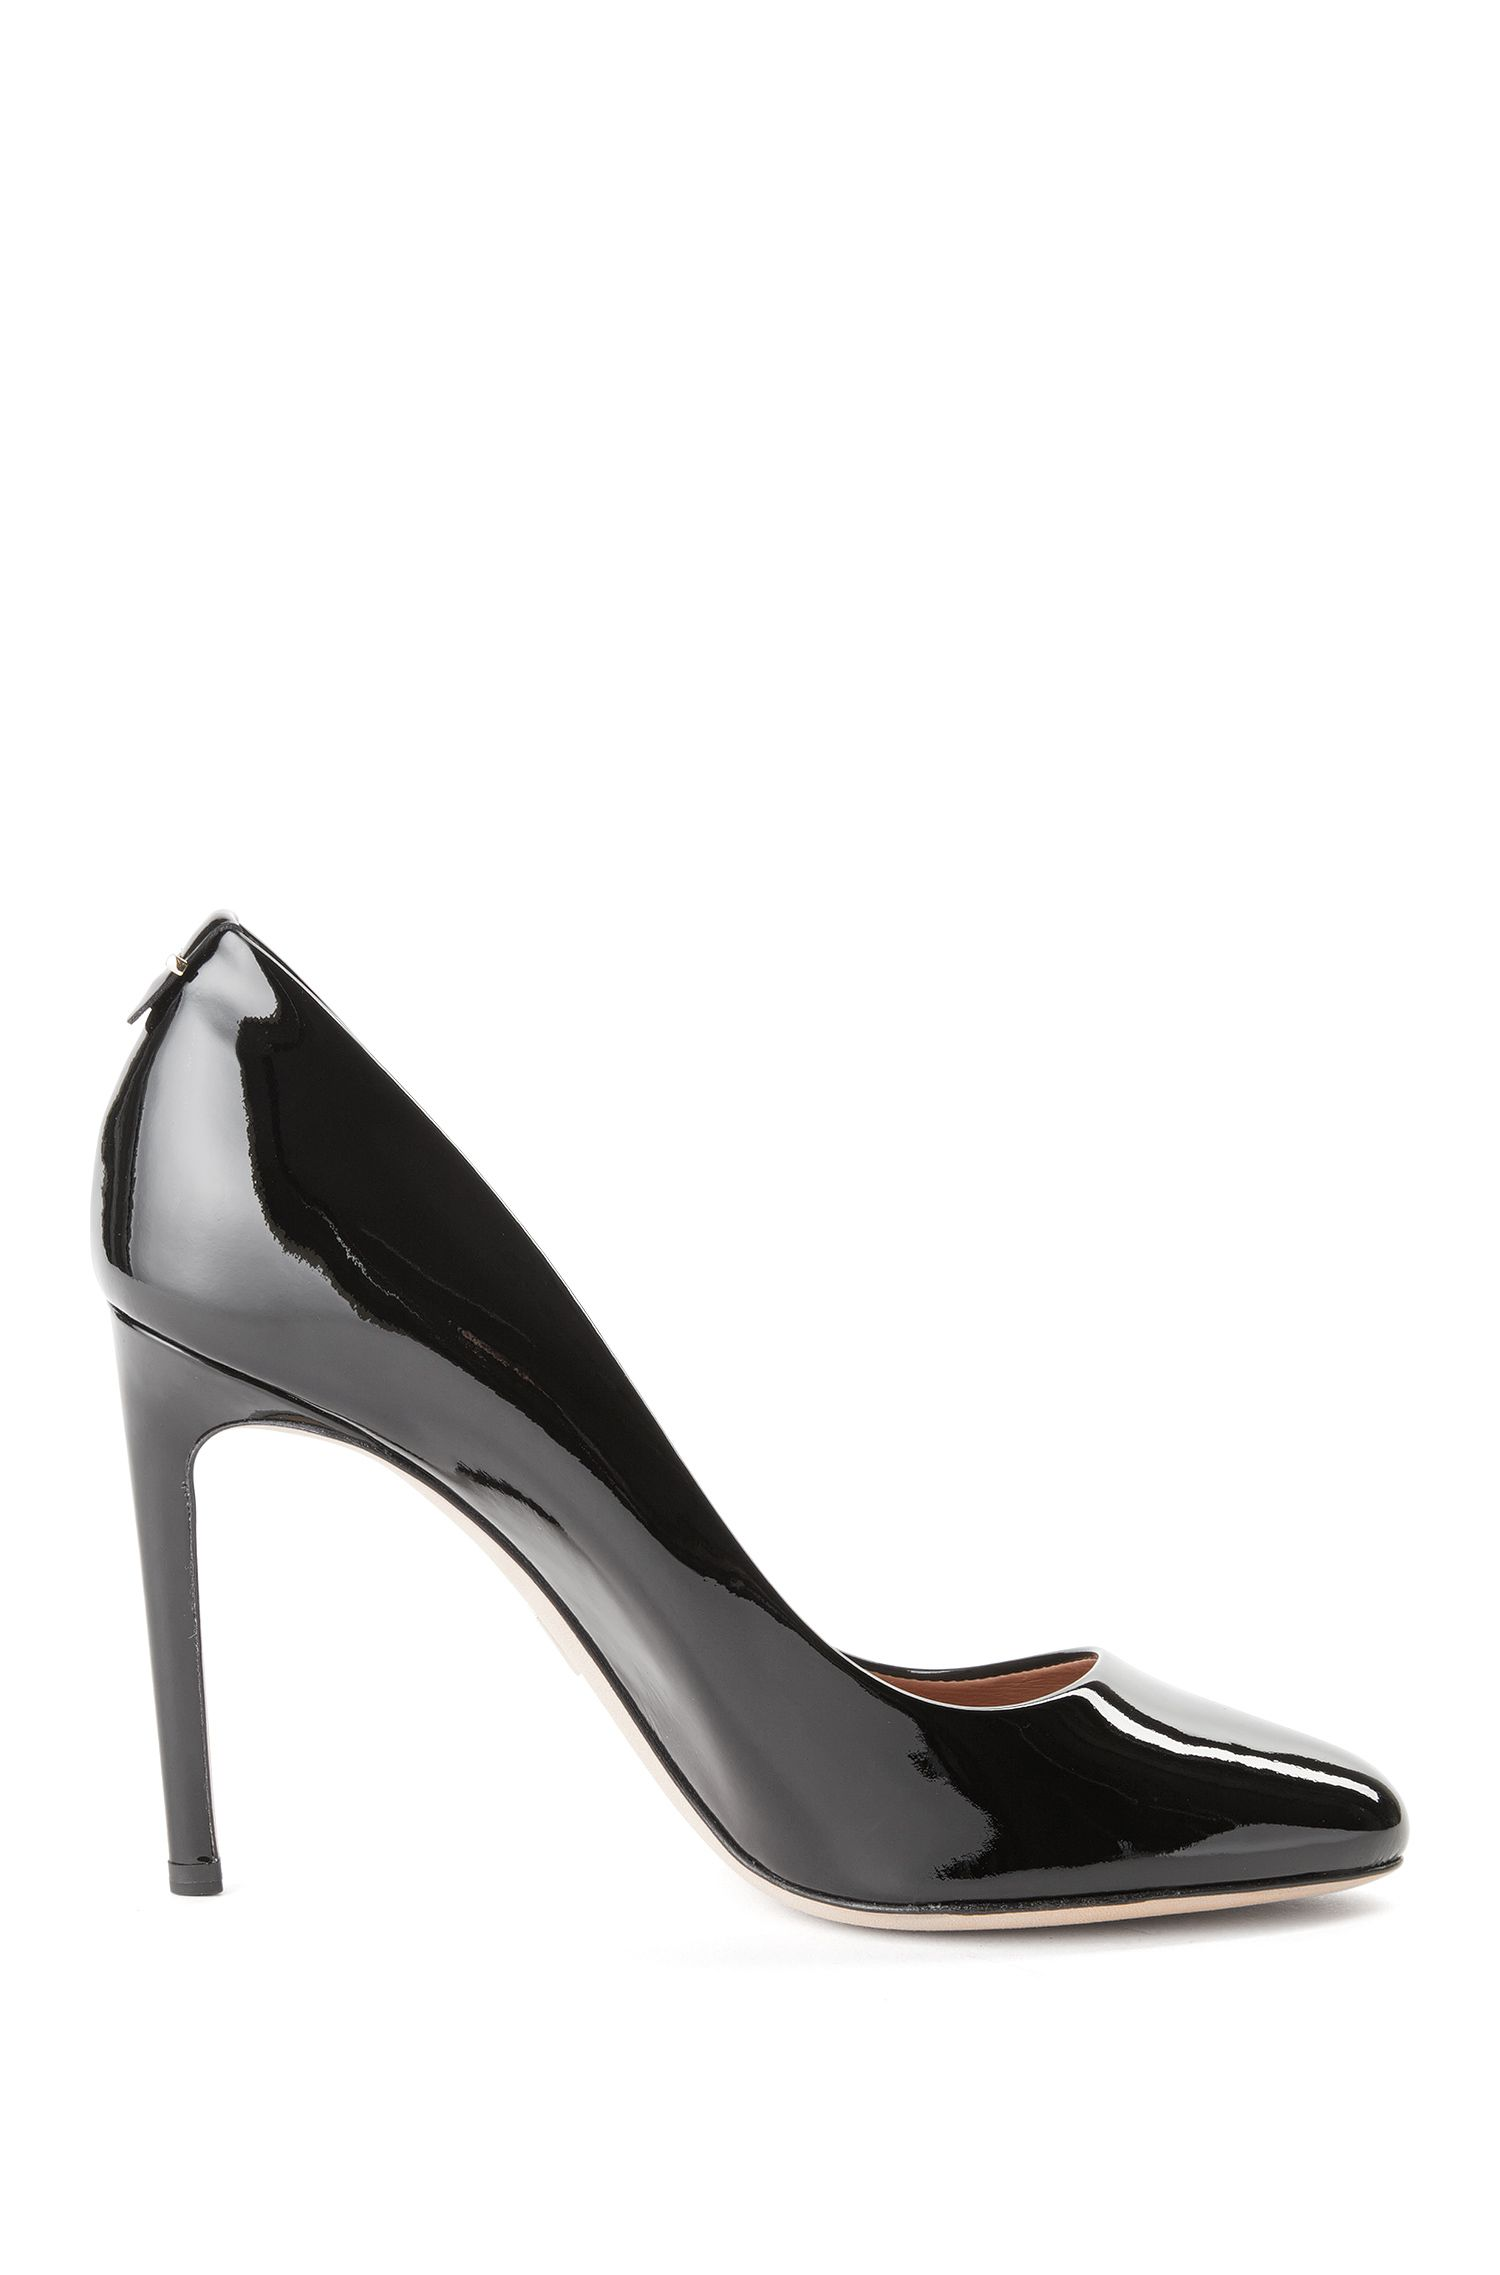 Pumps van leer met stilettohak: 'Staple R100-P'